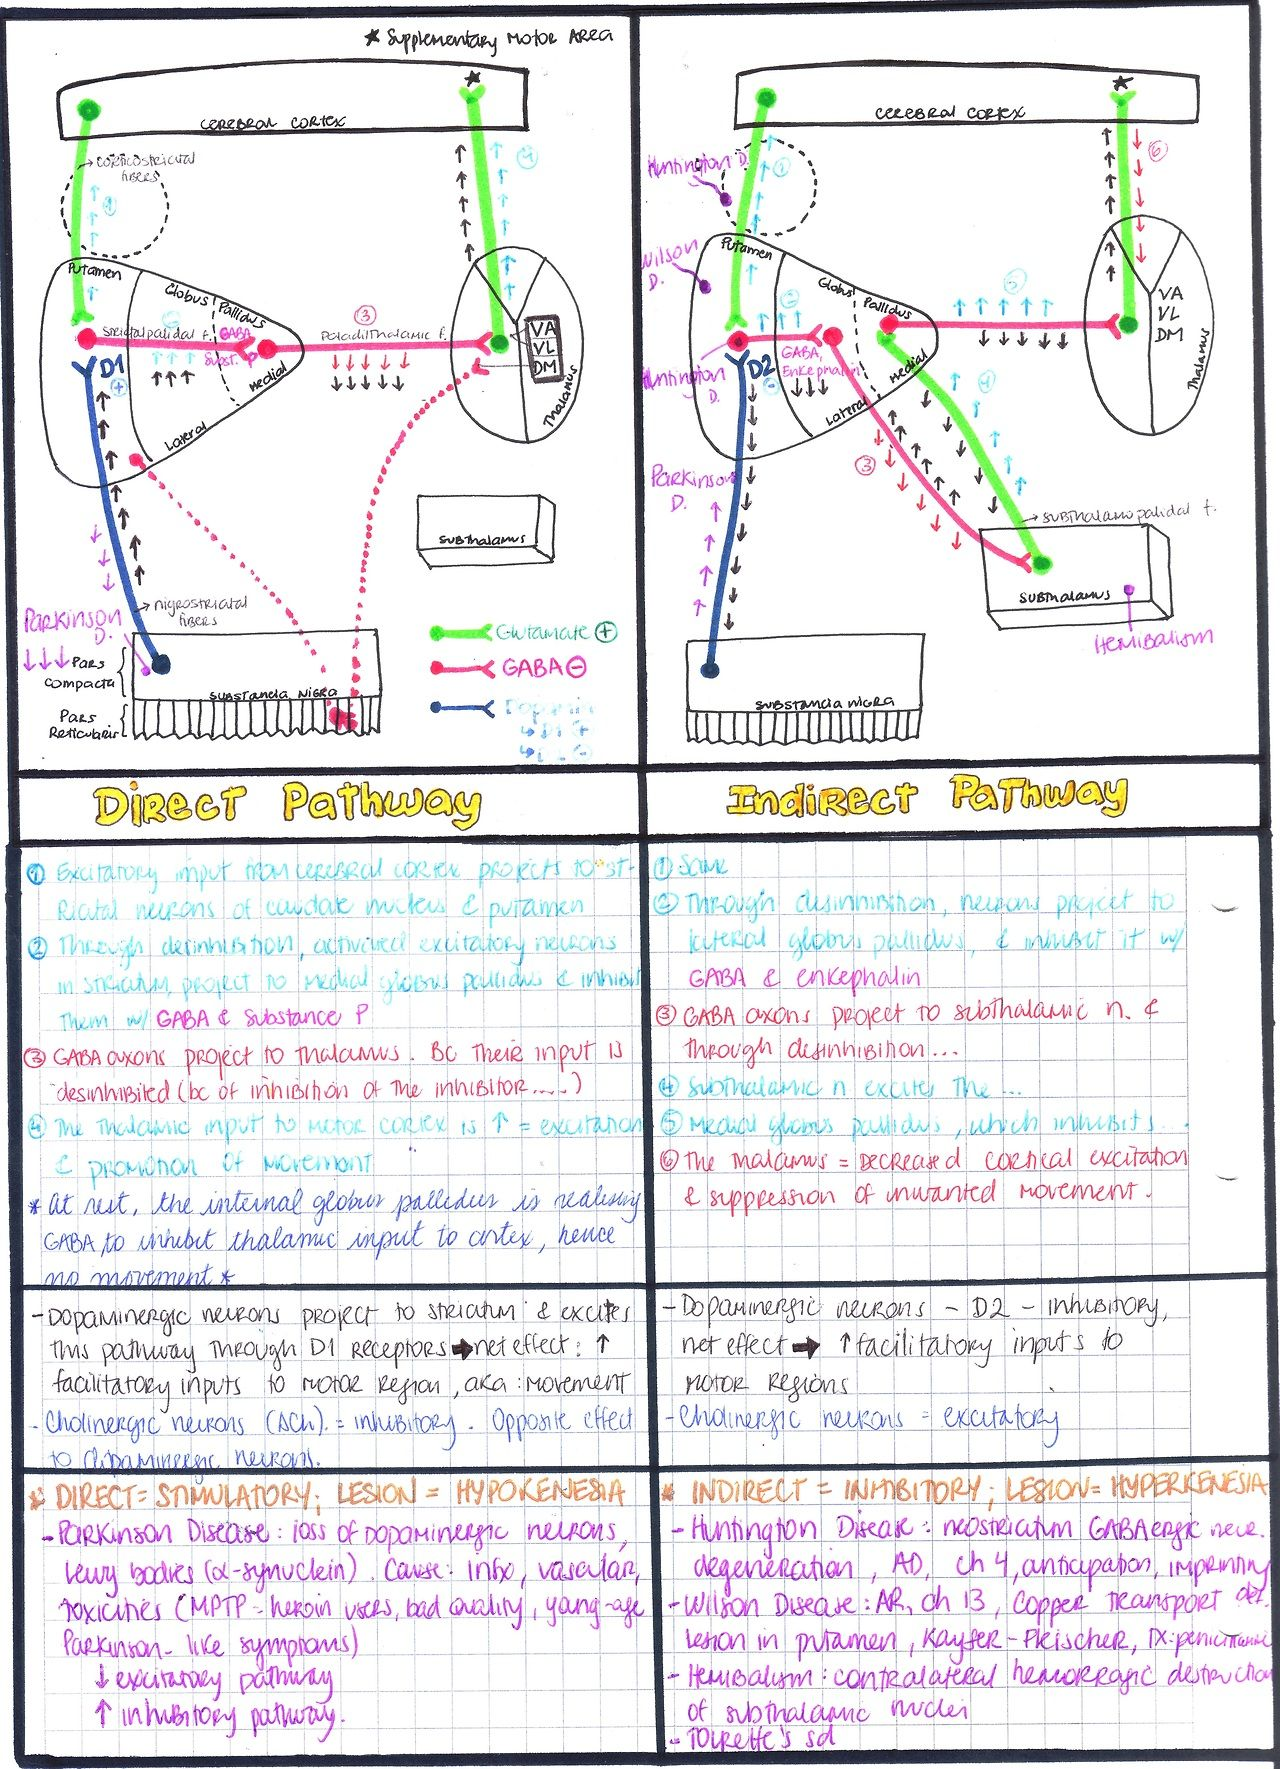 basal ganglia notes Chapter 8c - the basal ganglia a region that is immediately ventral to the anterior commissure in the basal forebrain note that it is close to the globus pallidus.